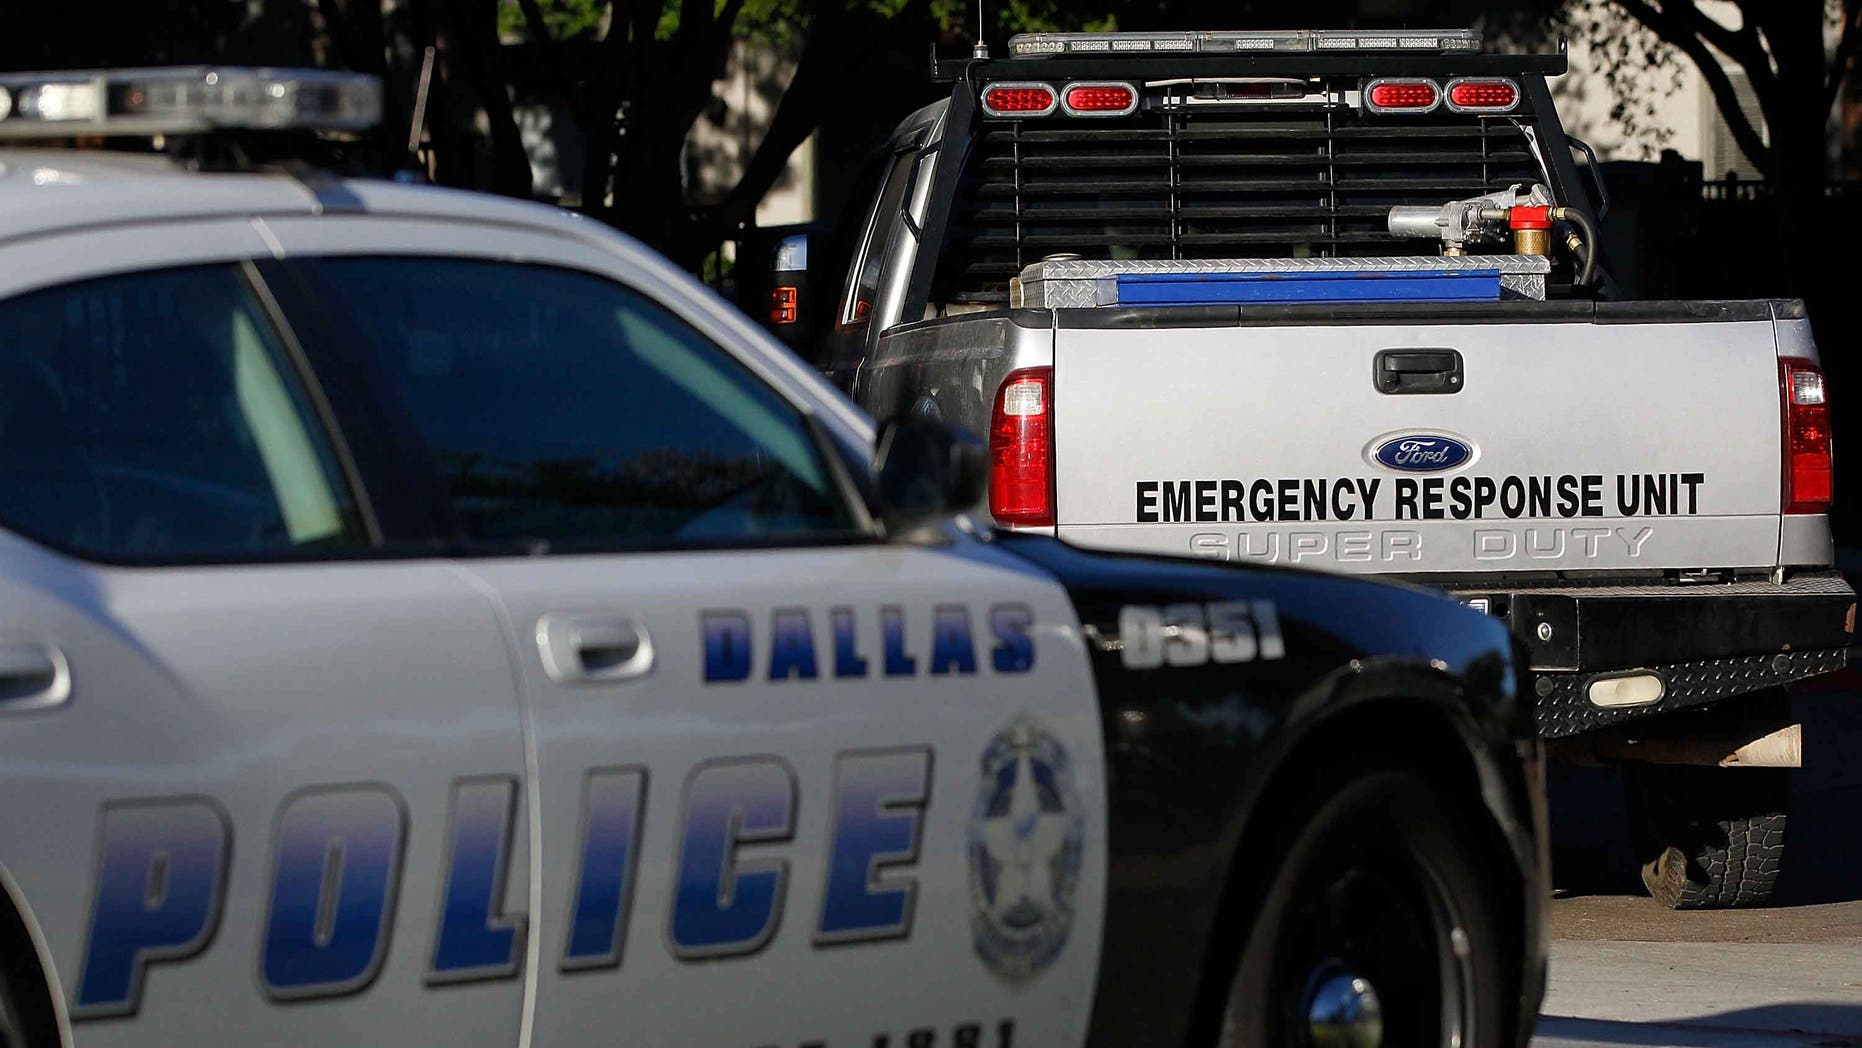 DALLAS, TX - OCTOBER 16:  A Dallas police car and an emergency response vehicle sit in the parking lot at the The Village Bend East apartment complex where a second health care worker who has tested positive for the Ebola virus resides on October 16, 2014 in Dallas, Texas.  Nurse Amber Vinson joins Nina Pham as health workers who have contracted the Ebola virus at Texas Heath Presbyterian Hospital while treating patient Thomas Eric Duncan, who has since died.  (Photo by Mike Stone/Getty Images)